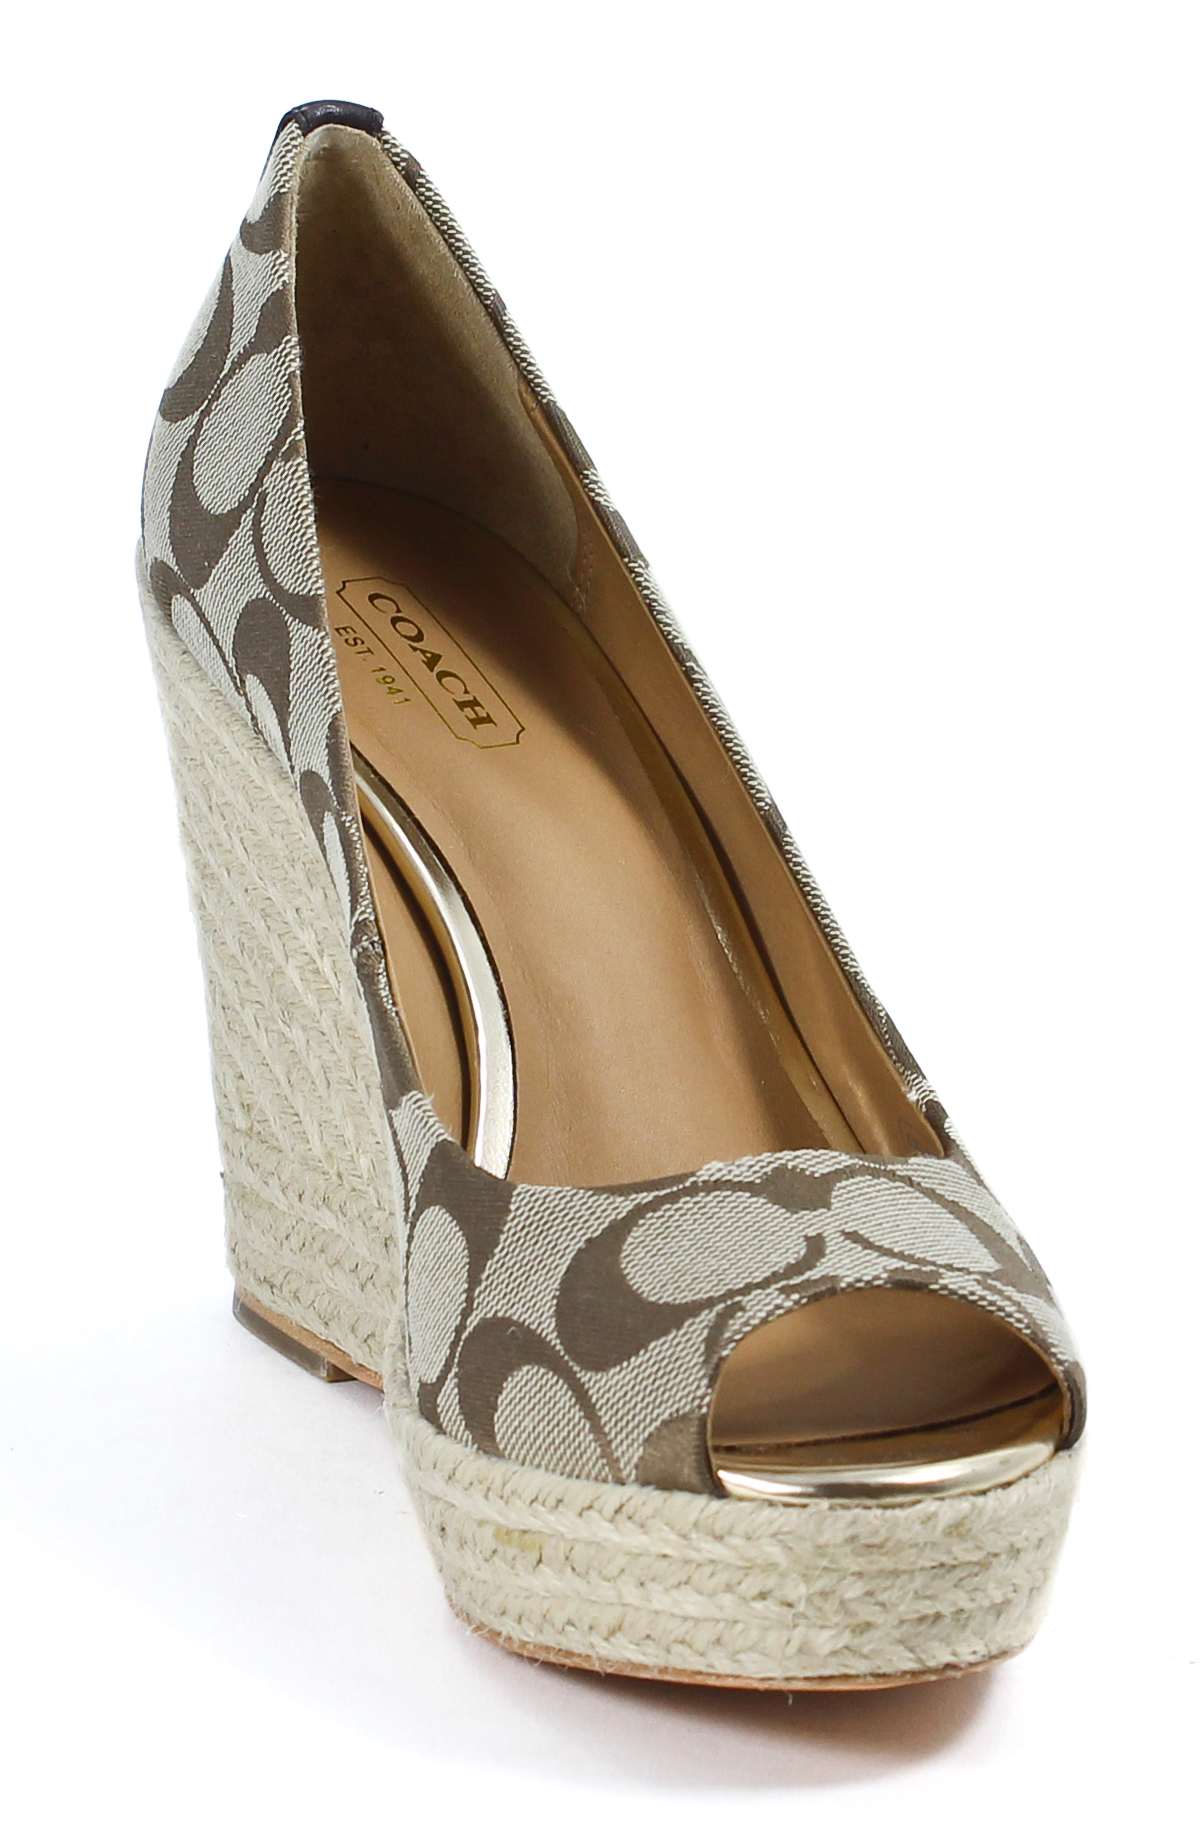 coach signature womens khaki milan platform wedge sandal